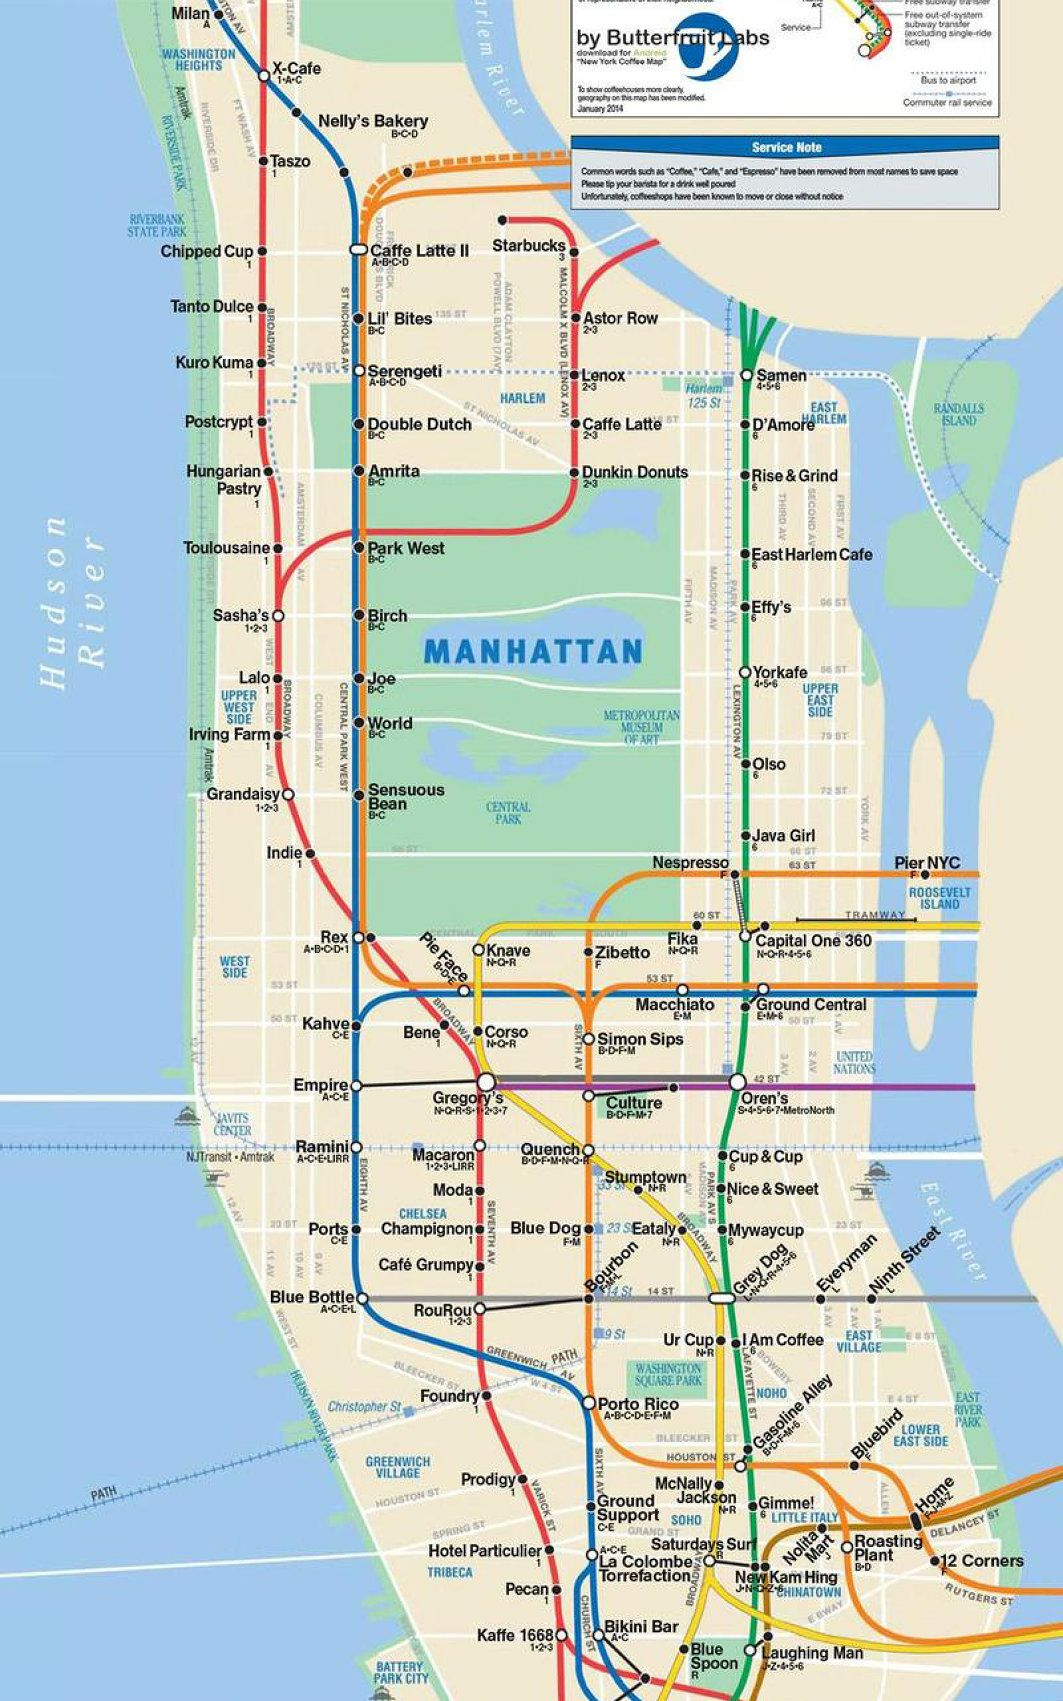 maps show best coffee shops by subway stops codesign business design